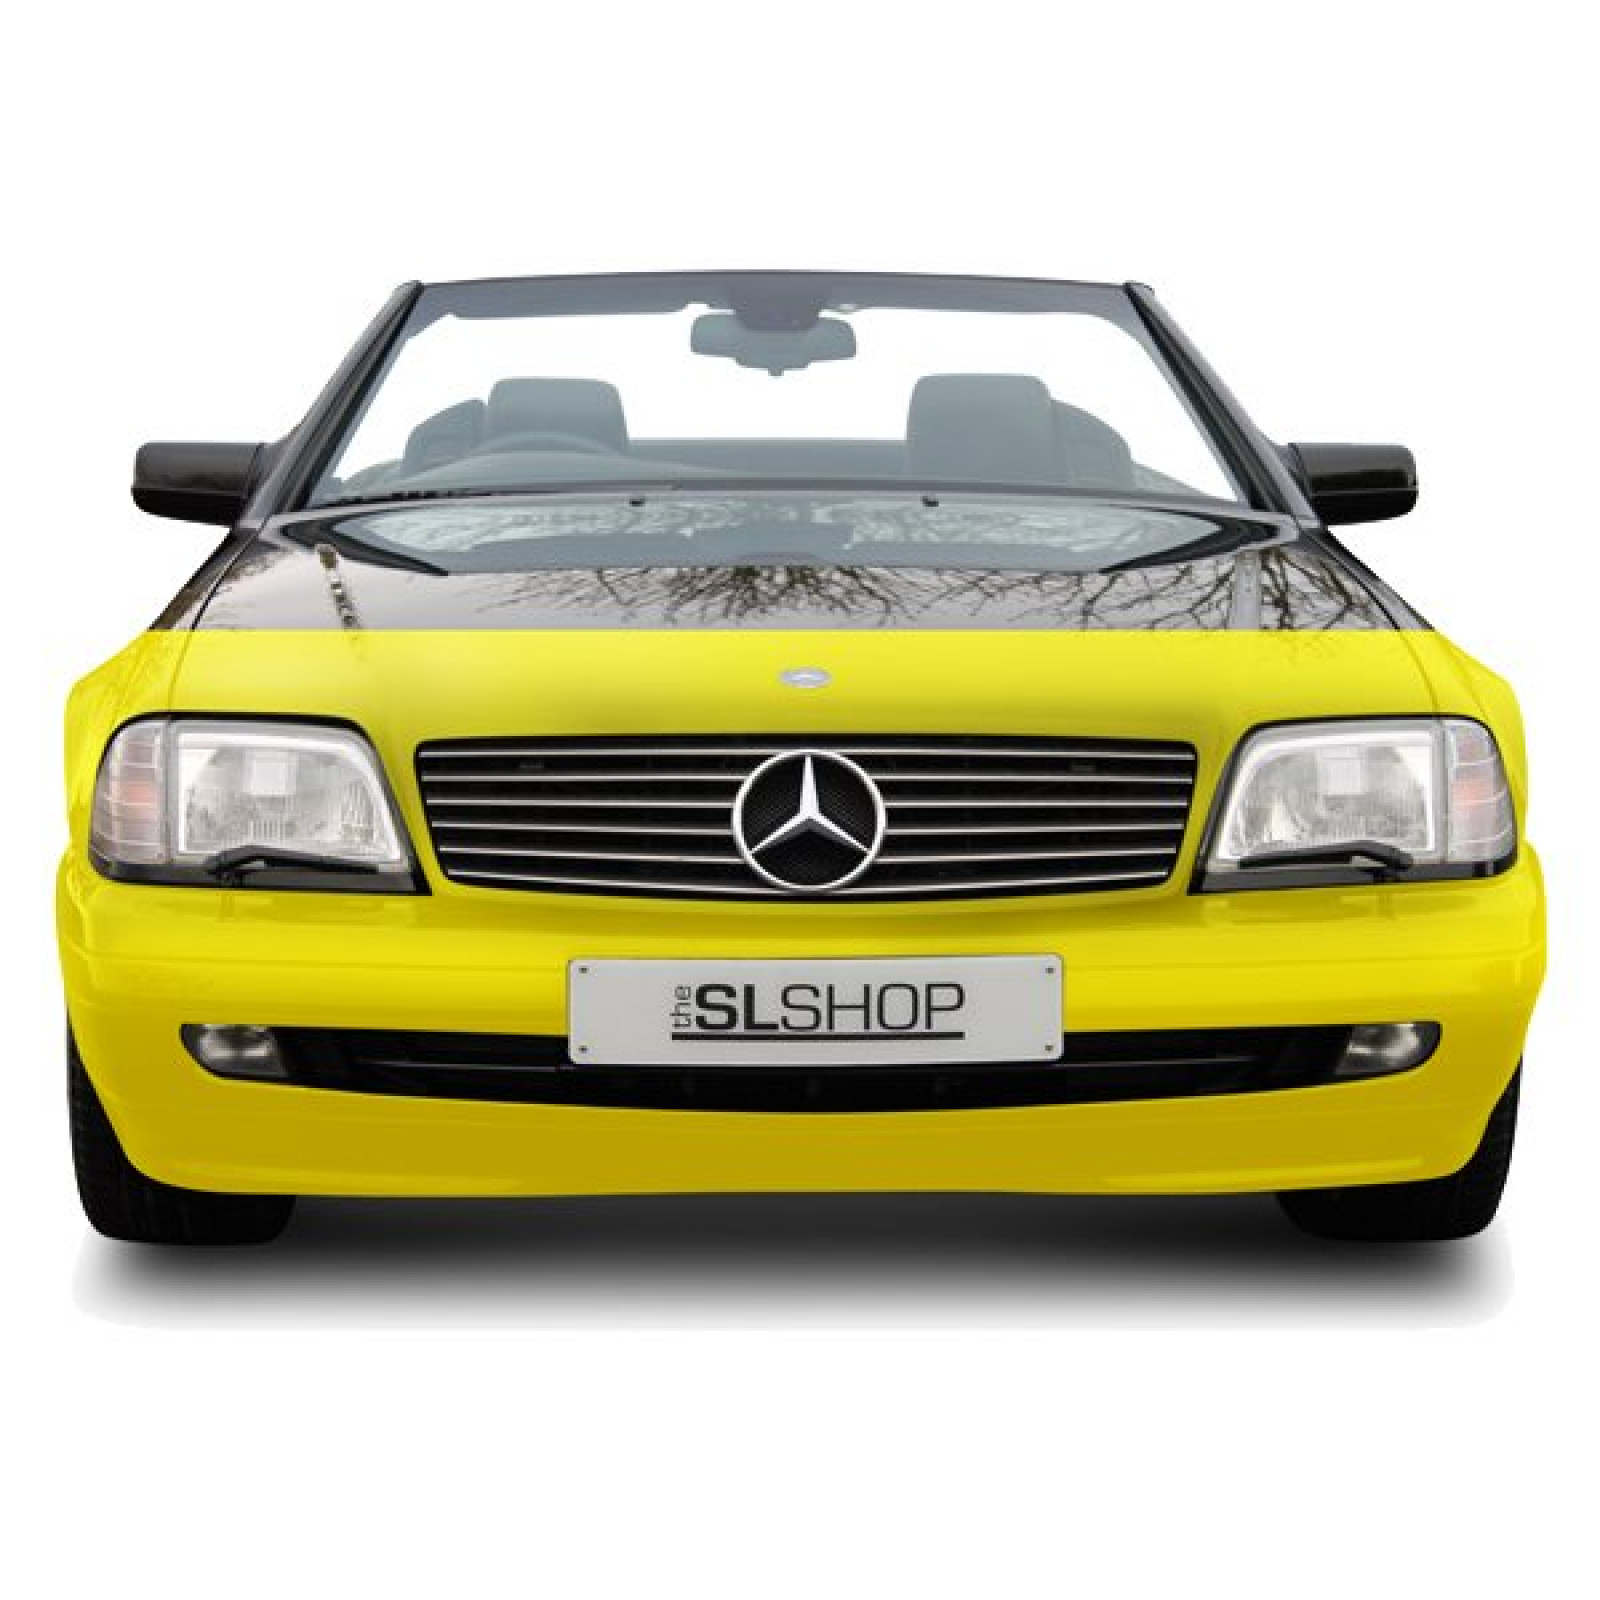 Mercedes benz sl r129 paint protection film pattern for Mercedes benz shop